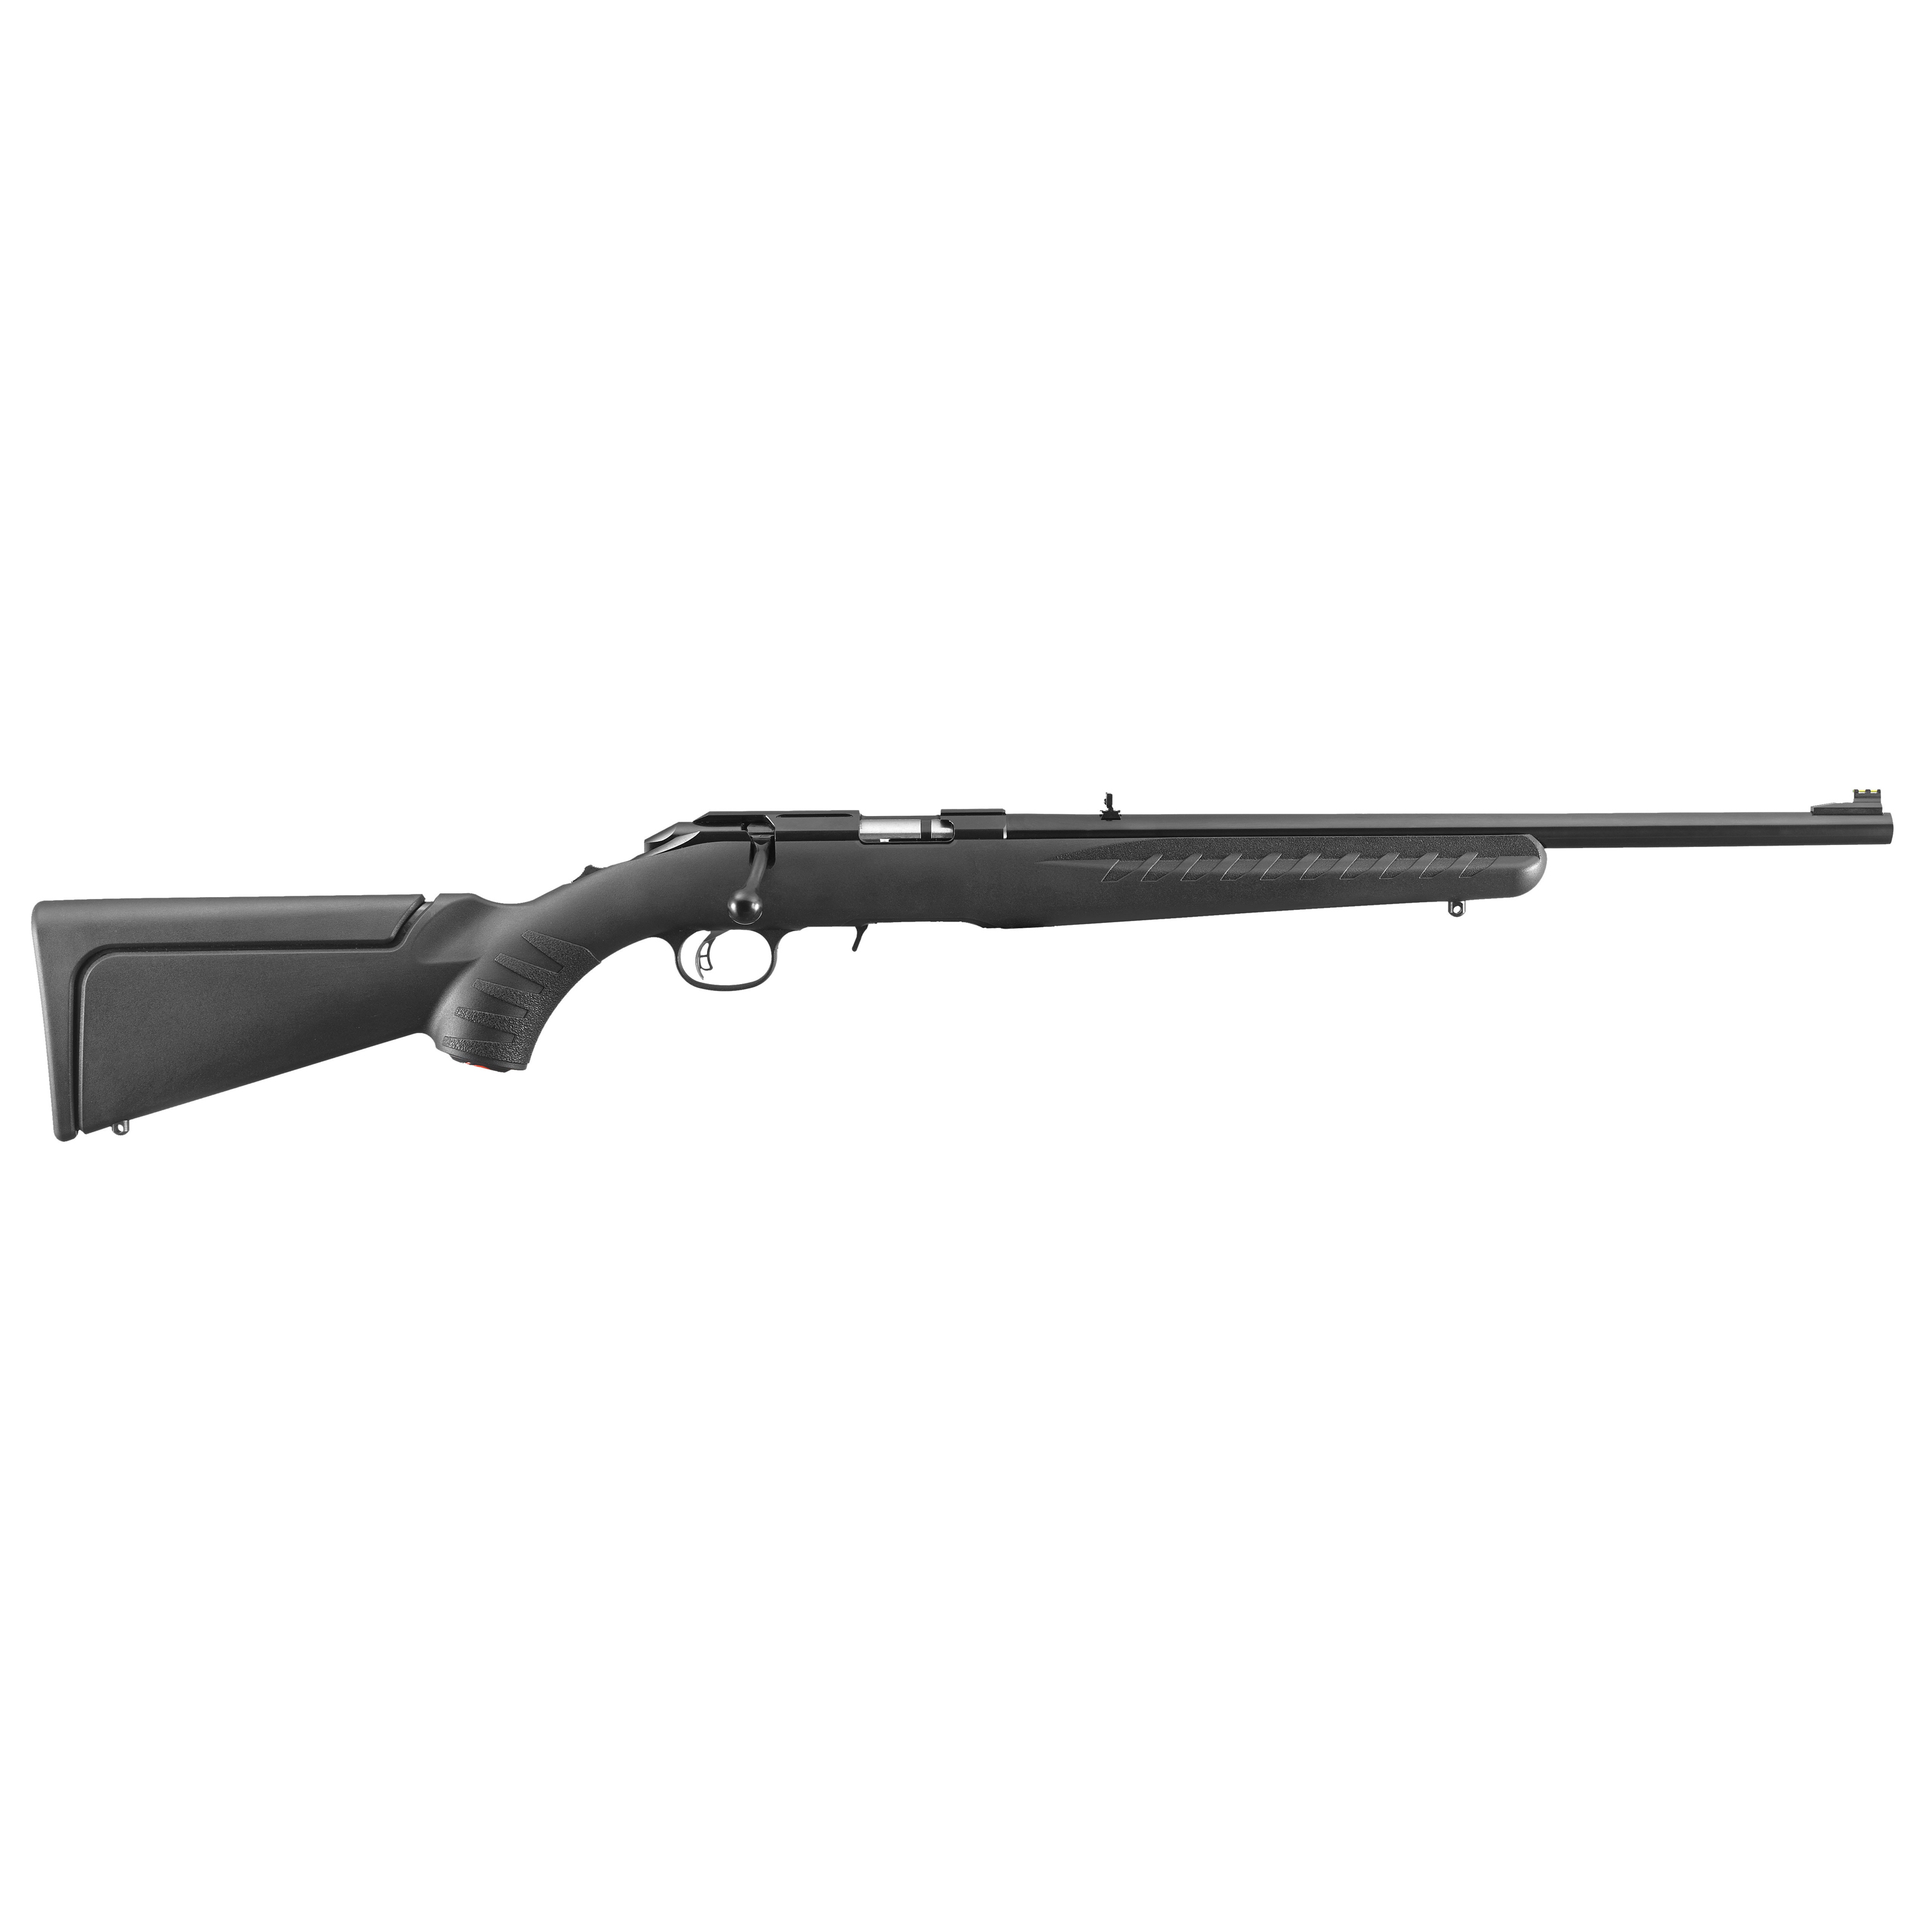 """Each Ruger American Rimfire(R) rifle includes two interchangeable stock modules that provide comb height options for scope or iron sight use (excludes wood and laminate stock models). Standard models come with long length of pull modules"""" while compact models come with short length of pull modules. By simply removing the rear sling swivel stud"""" stock modules can be changed in seconds. All four stock modules are completely interchangeable across all models. Easy-to-use 10/22(R)-style extended magazine release provides smooth"""" no-fuss removal of flush-mounted magazine. Patent-pending Power Bedding(R) integral bedding block system positively locates the receiver and free-floats the barrel for outstanding accuracy. Ruger Marksman Adjustable(TM) trigger offers a crisp release with a pull weight that is user adjustable between 3 and 5 pounds"""" allowing shooters to make that perfect shot. Features a visible"""" accessible and easy-to-actuate tang safety that provides instant security. Cold hammer-forged barrel results in ultra-precise rifling that provides exceptional accuracy"""" longevity and easy cleaning. A 3/8"""" rimfire scope base is machined into the receiver"""" which is also drilled and tapped for Weaver(R) #12 bases (not included). A 60 degree bolt provides ample scope clearance and the easy-to-use"""" receiver-mounted bolt release allows the bolt to be readily removed without requiring a pull of the trigger"""" a unique safety feature among rimfire"""" bolt-action rifles. Also includes: Williams(TM) fiber optic front sight and adjustable"""" """"V"""" slot"""" folding-leaf rear sight; sling swivel studs."""